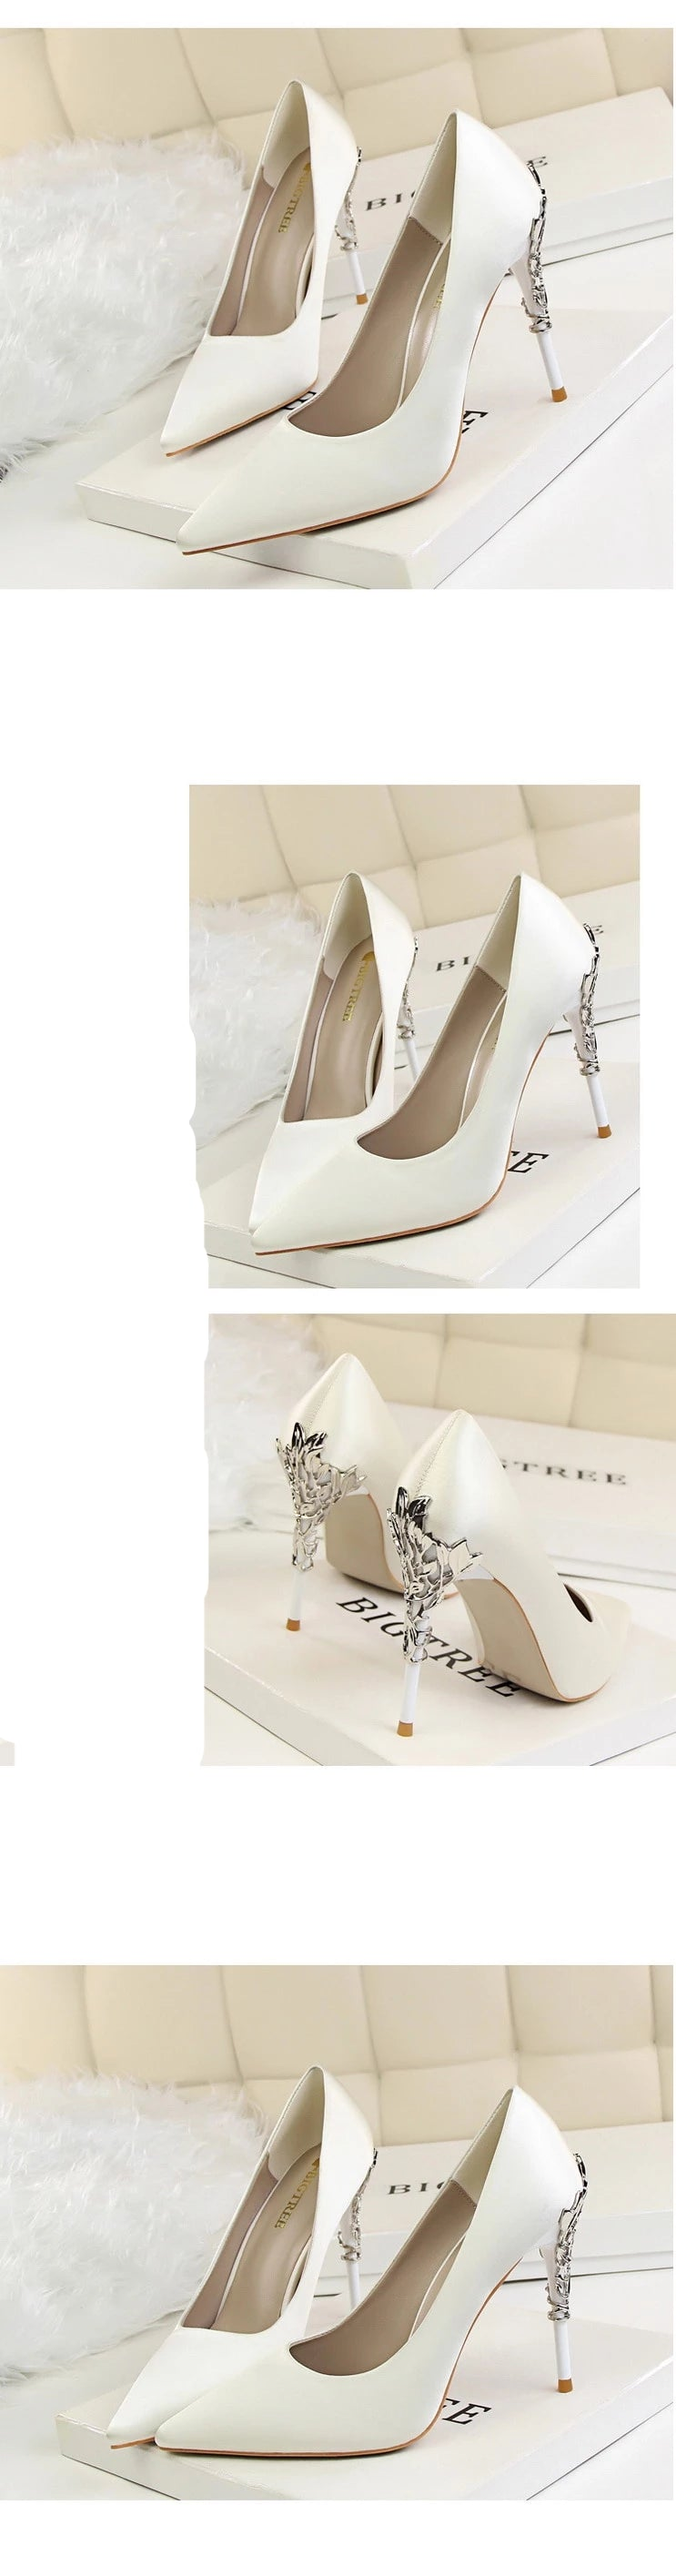 Luxury Metal Heels Pointed Shoes white